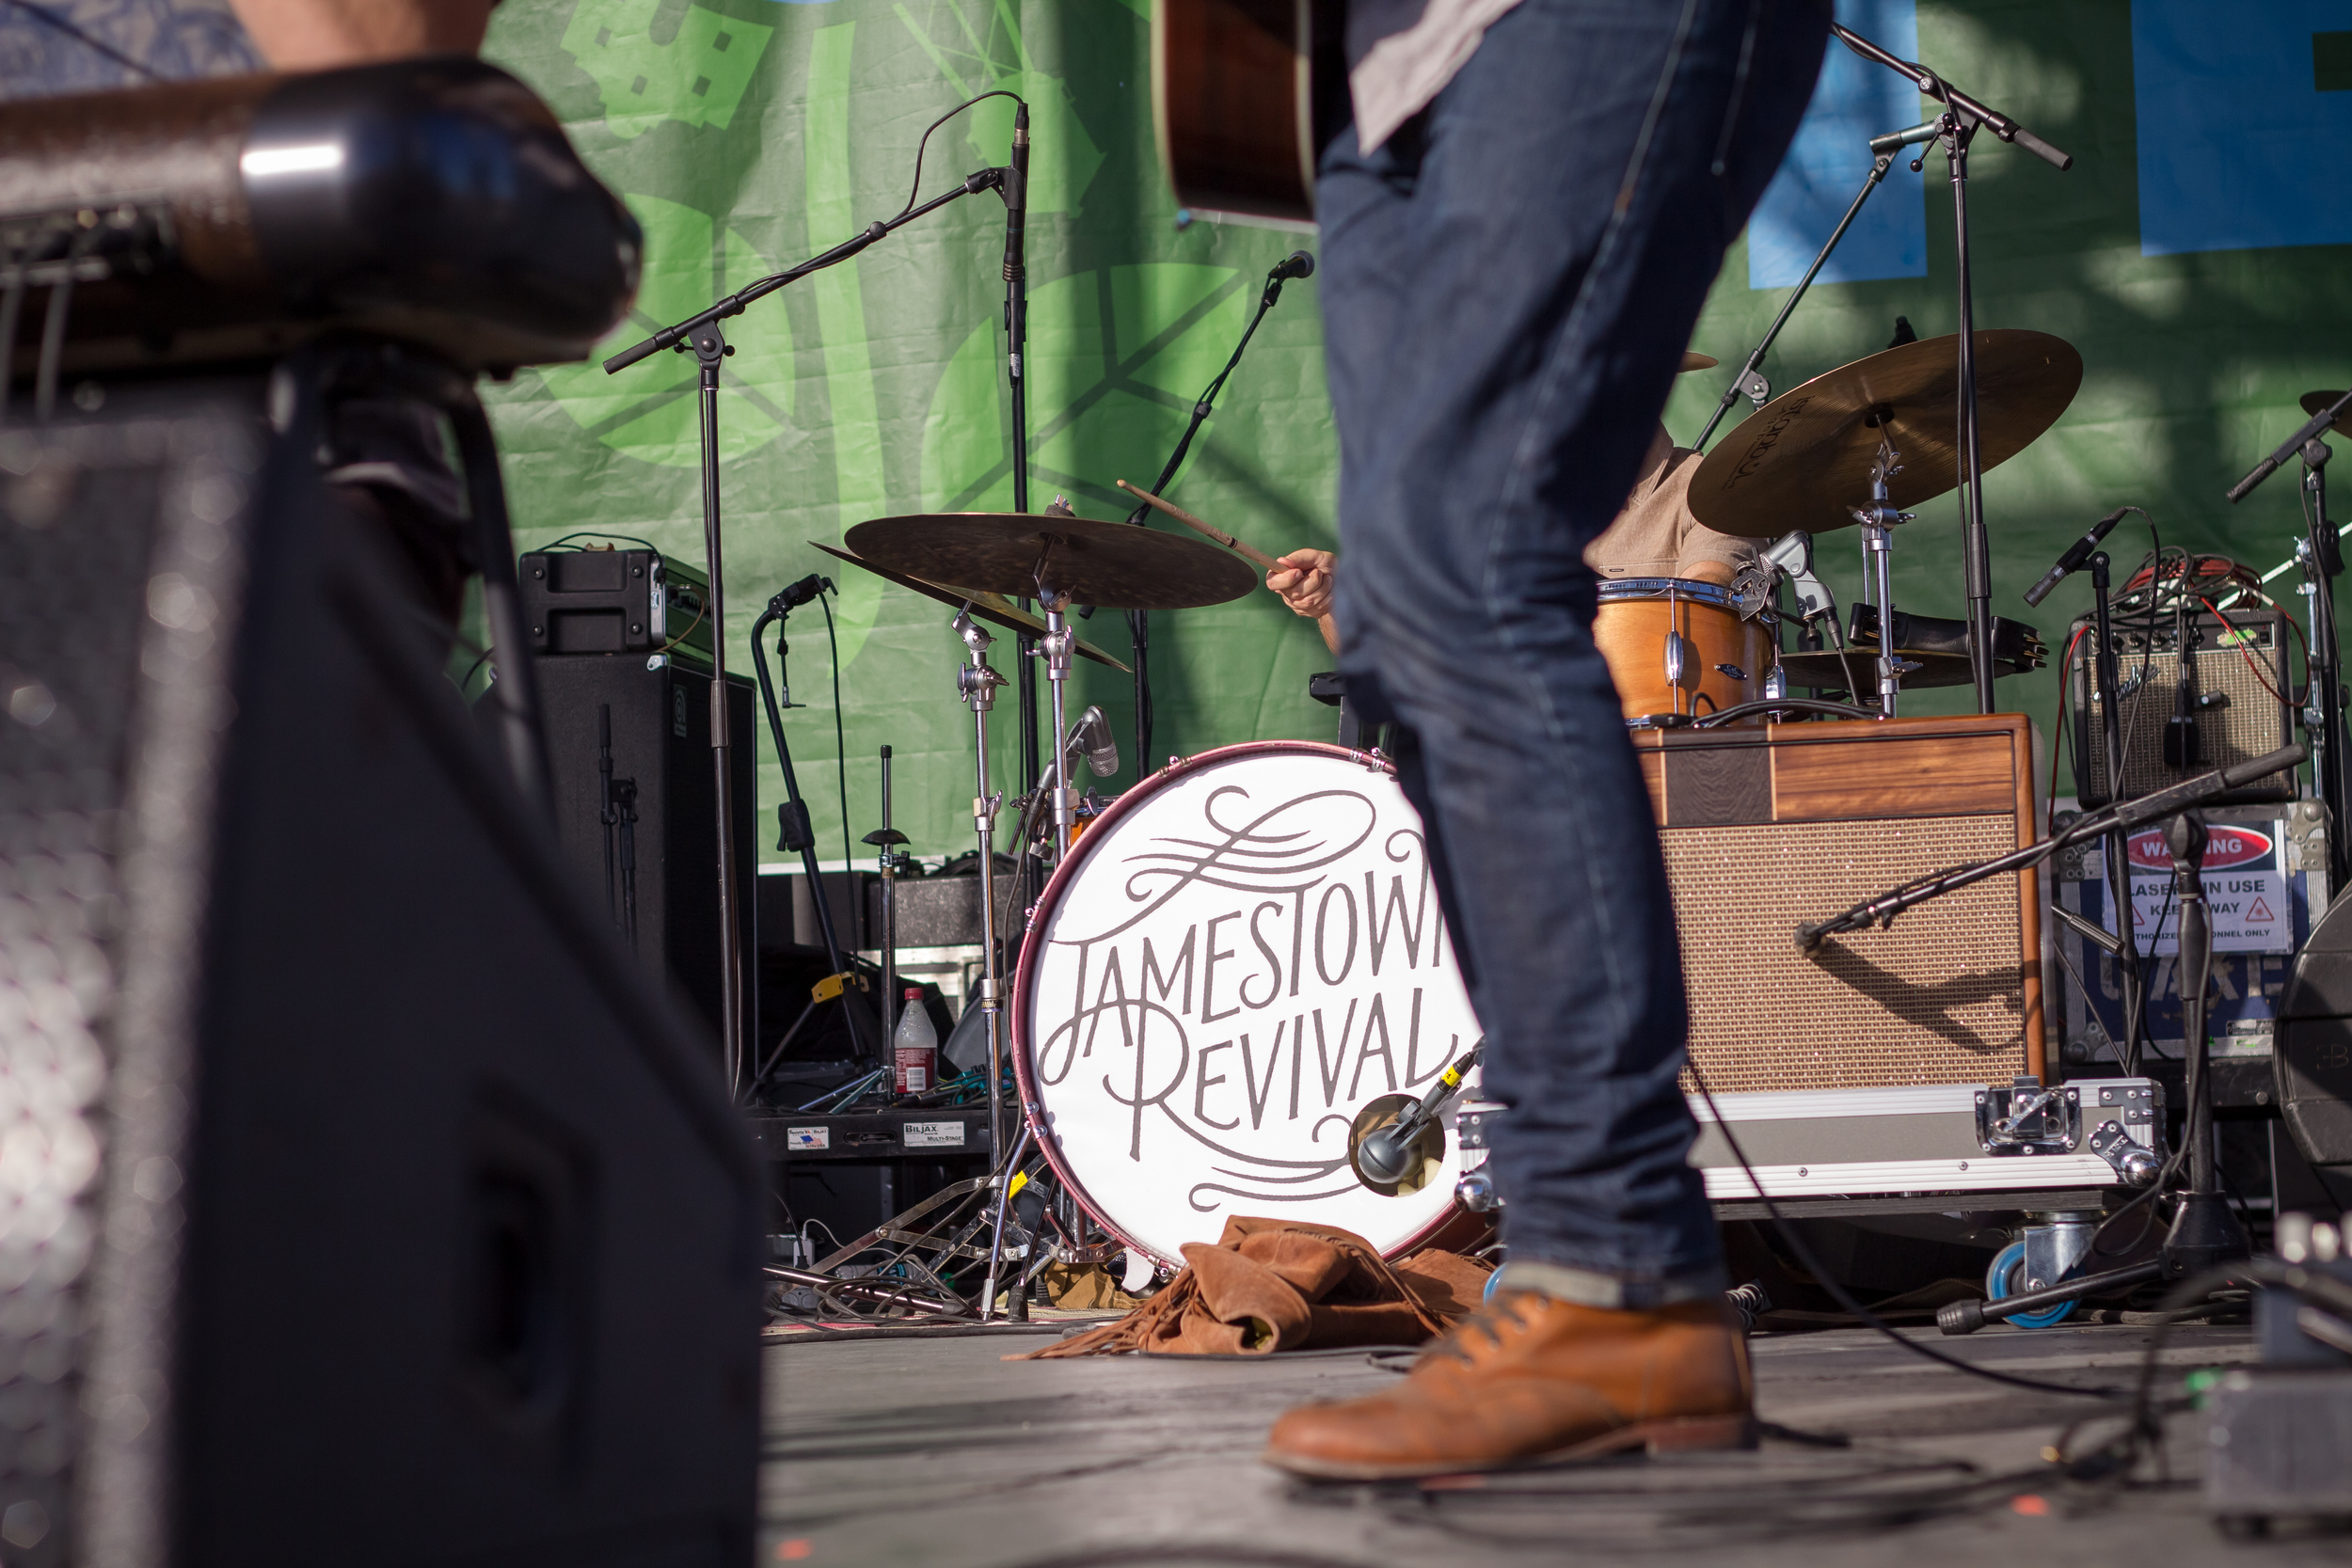 Jamestown-Revival-2.jpg